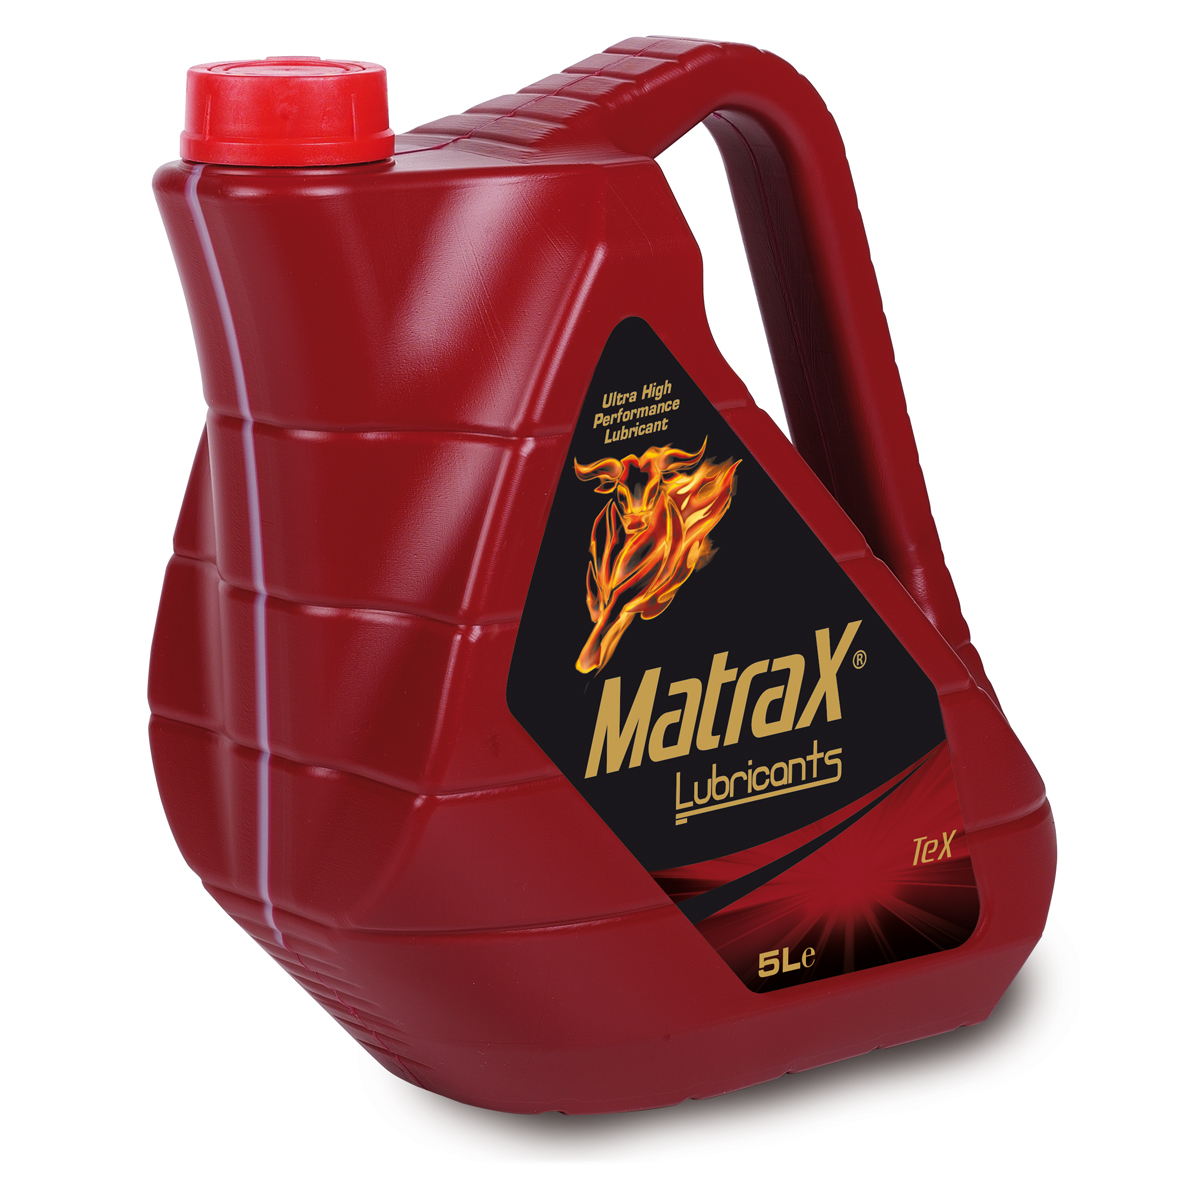 matrax-lubricants-tex-5l